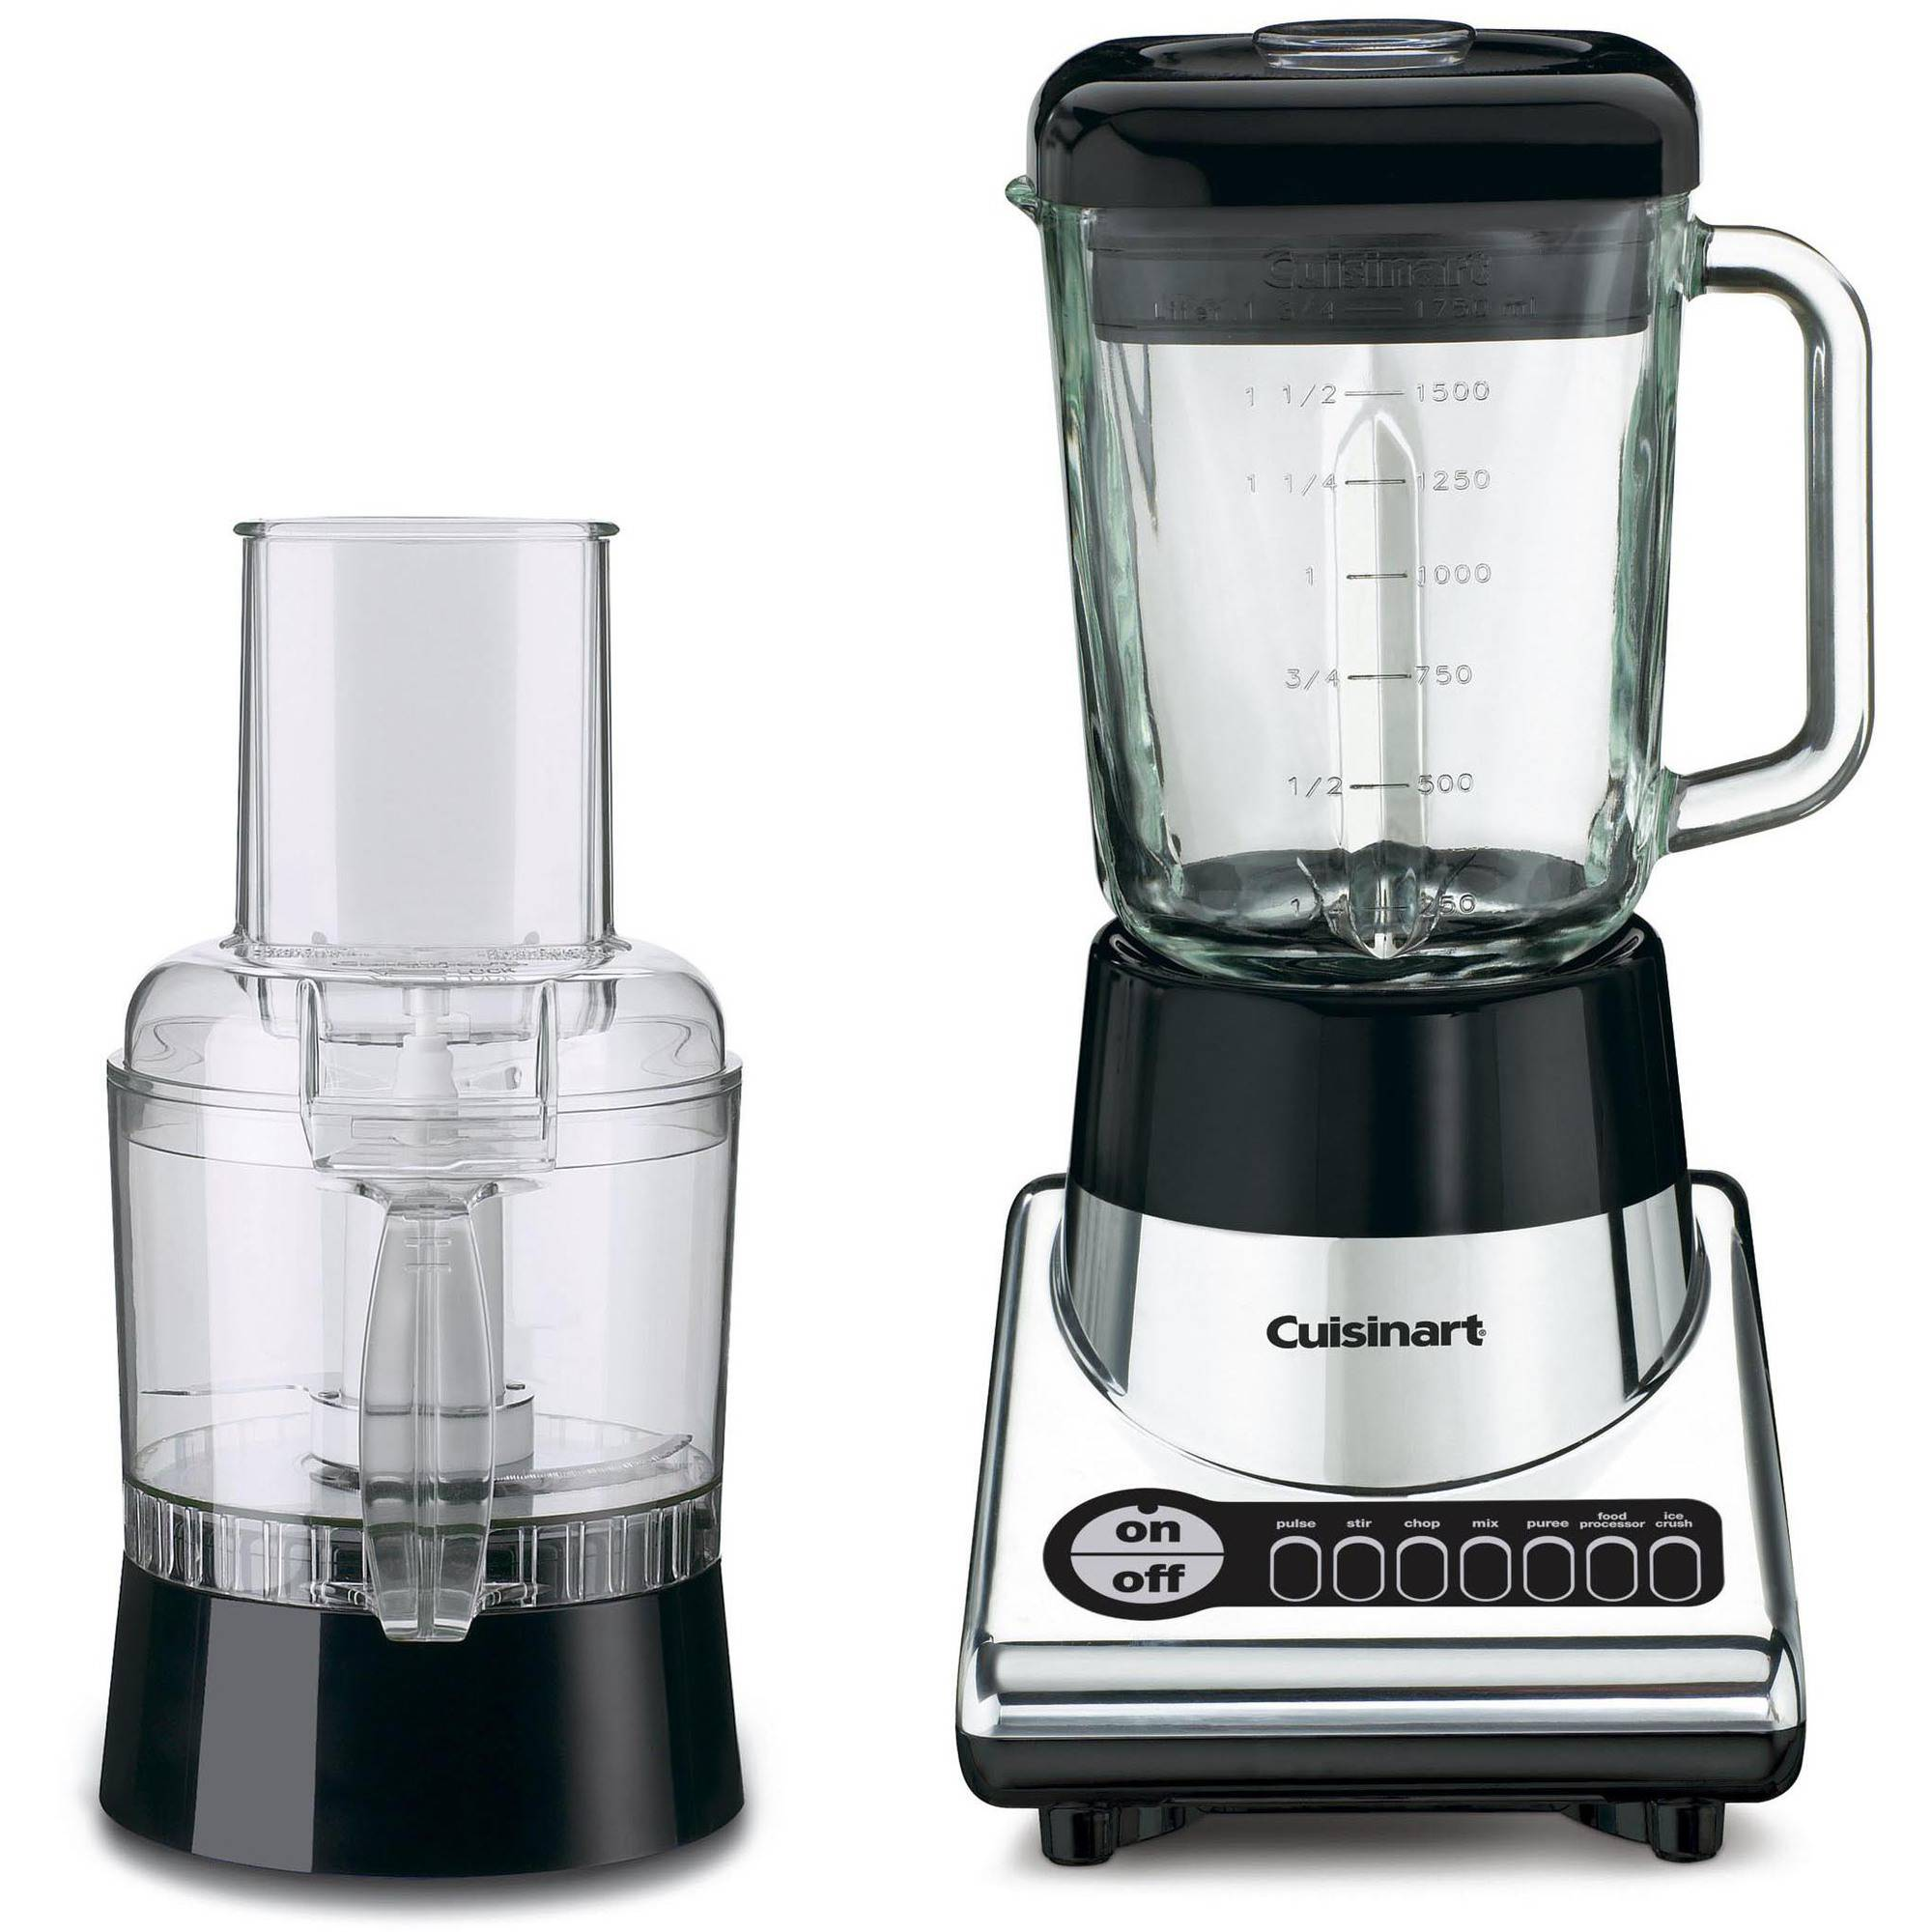 Cuisinart Blender 12-Cup Food Processor, Chrome